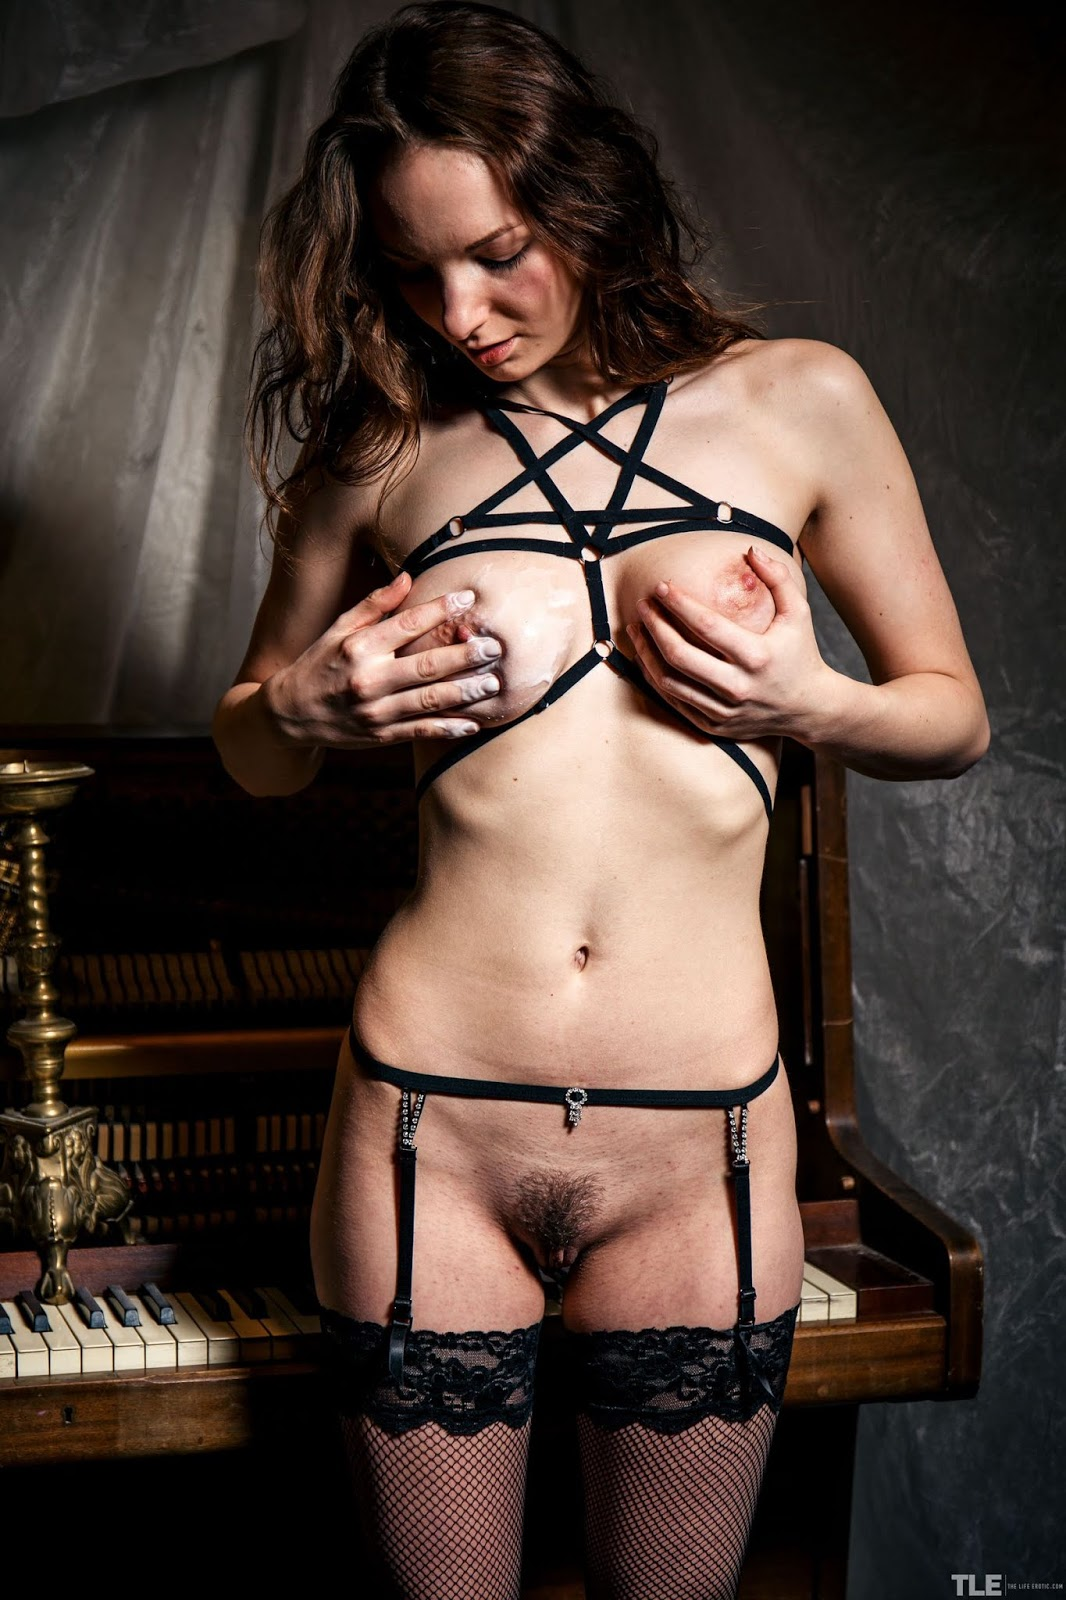 Anna Ferox - TheLifeErotic - Wax Lyrical - Wax Pussy Pictures